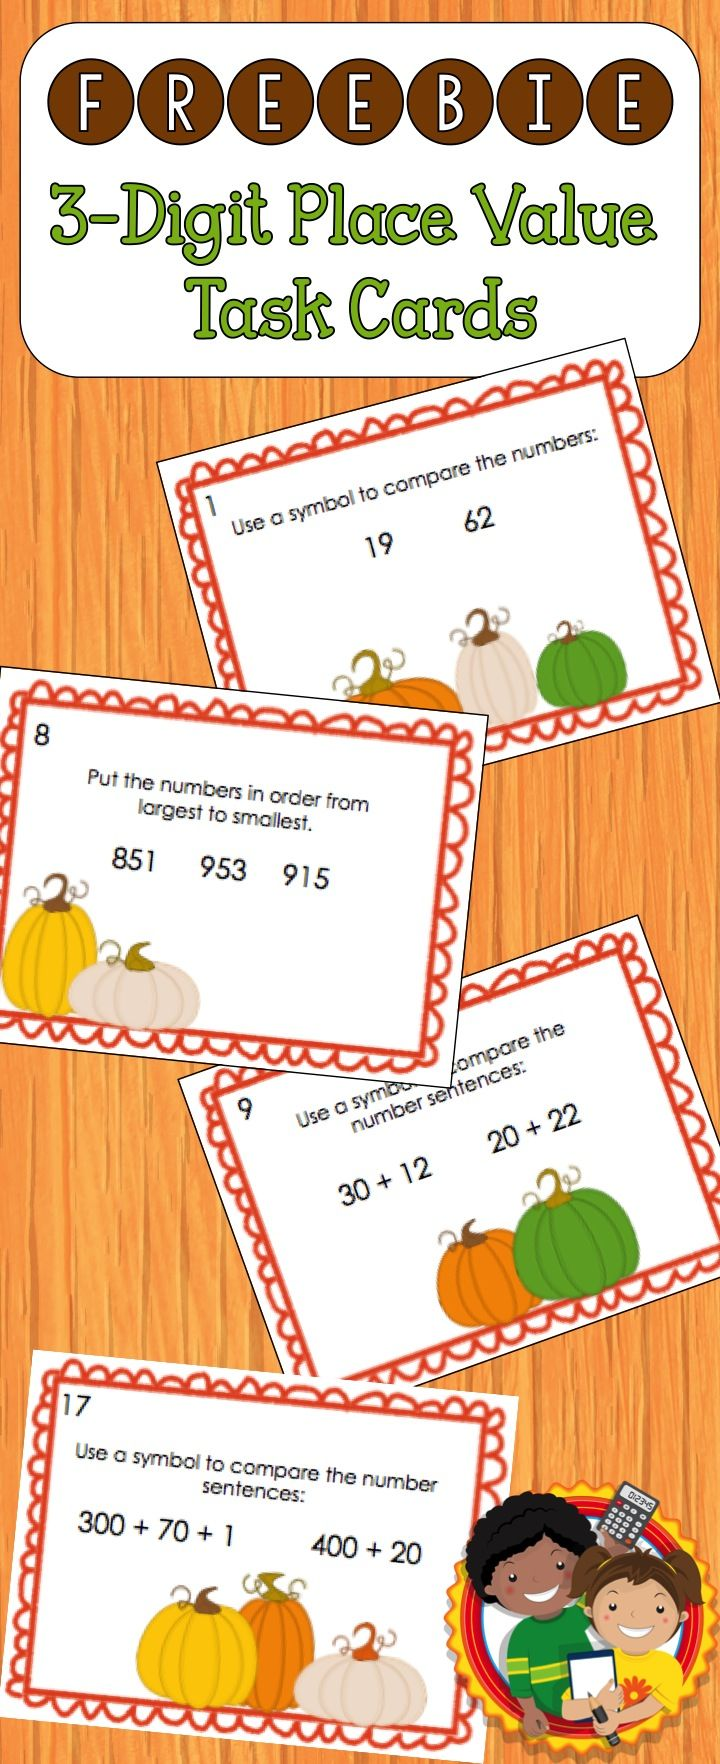 This resource includes 24 place value task cards with a pumpkin theme. They are perfect for fall or autumn math centers. Topics include: comparing numbers, number forms, putting numbers in order.